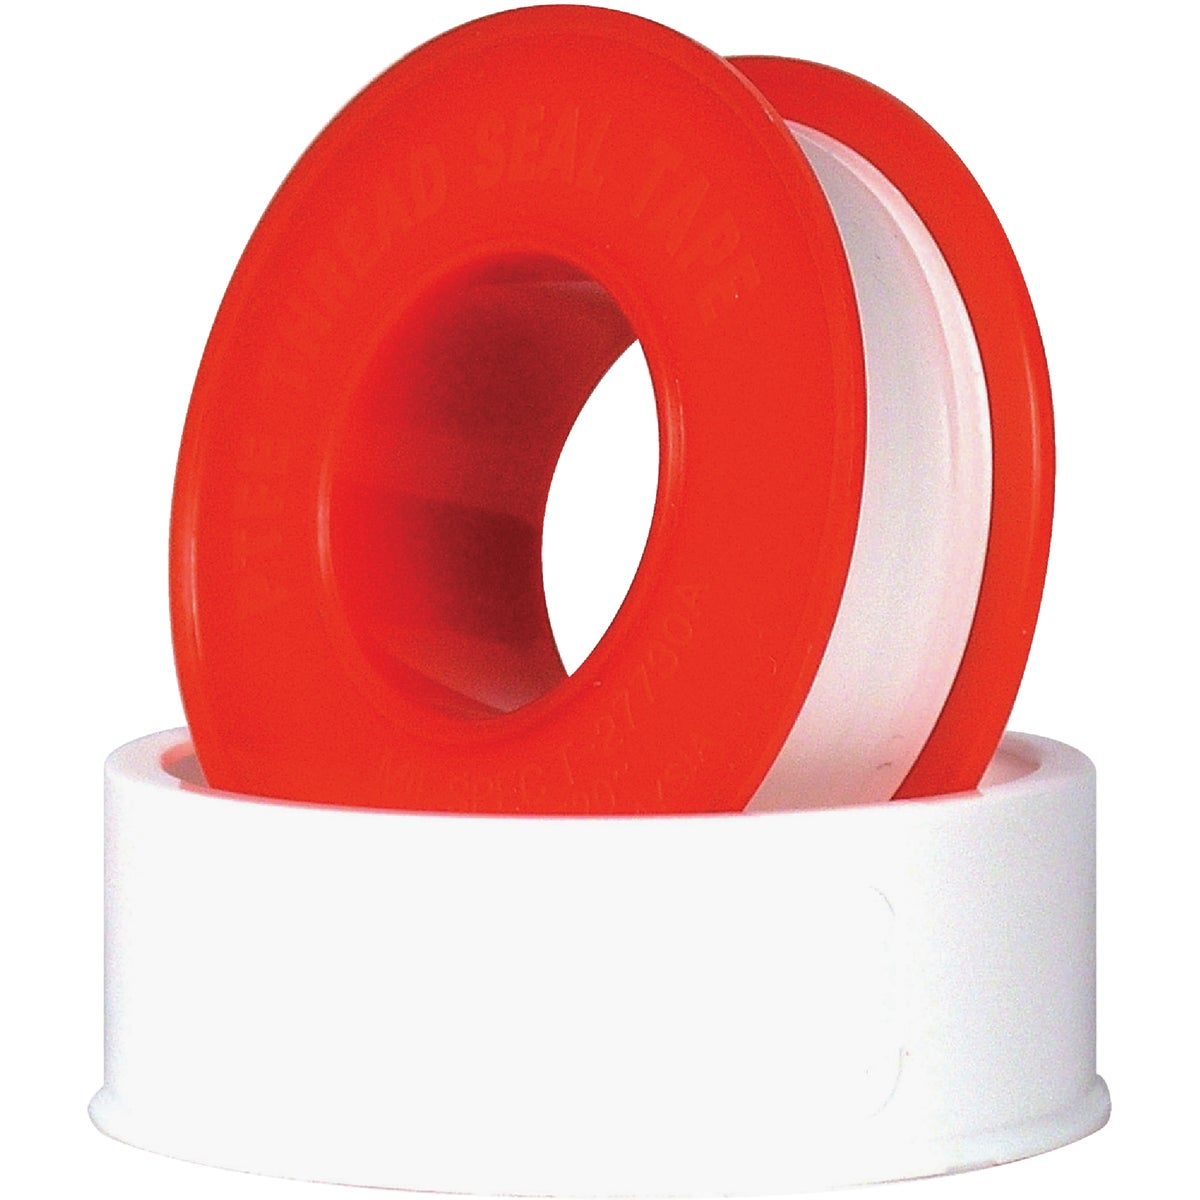 1/2X260 PTFE TAPE - 017070 by Wm H Harvey Co